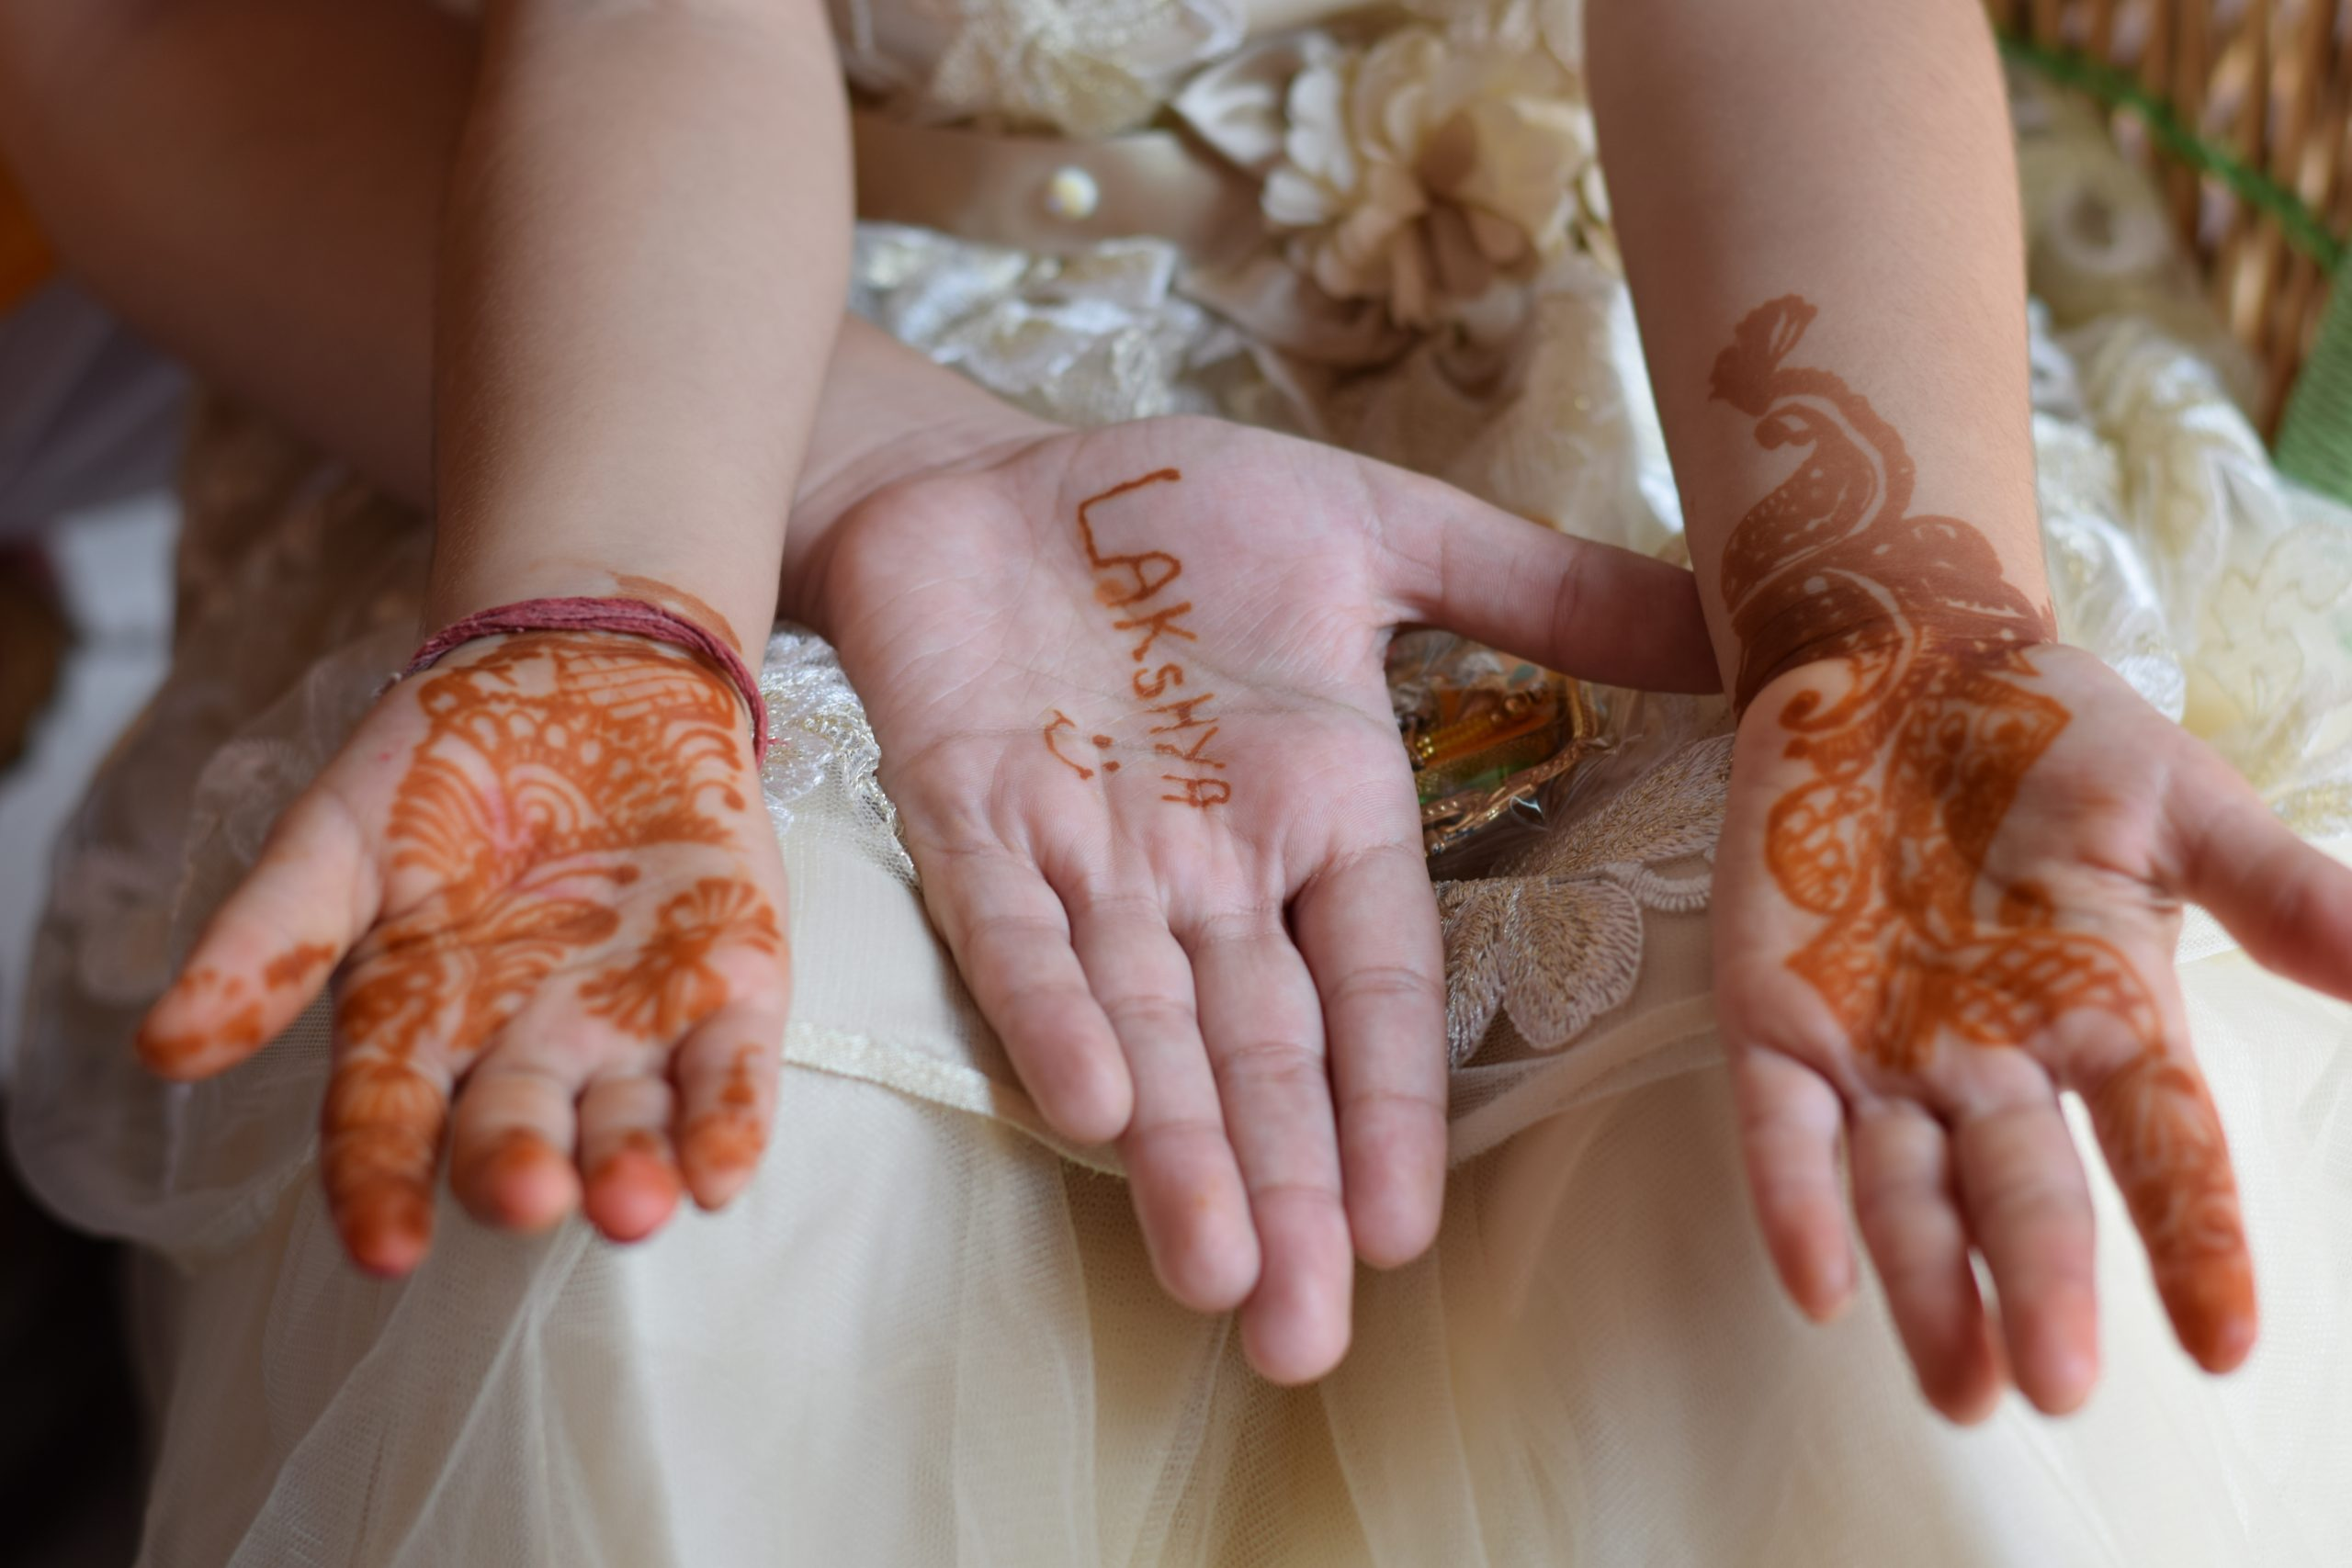 Brother and sister with Mehndi art on hands